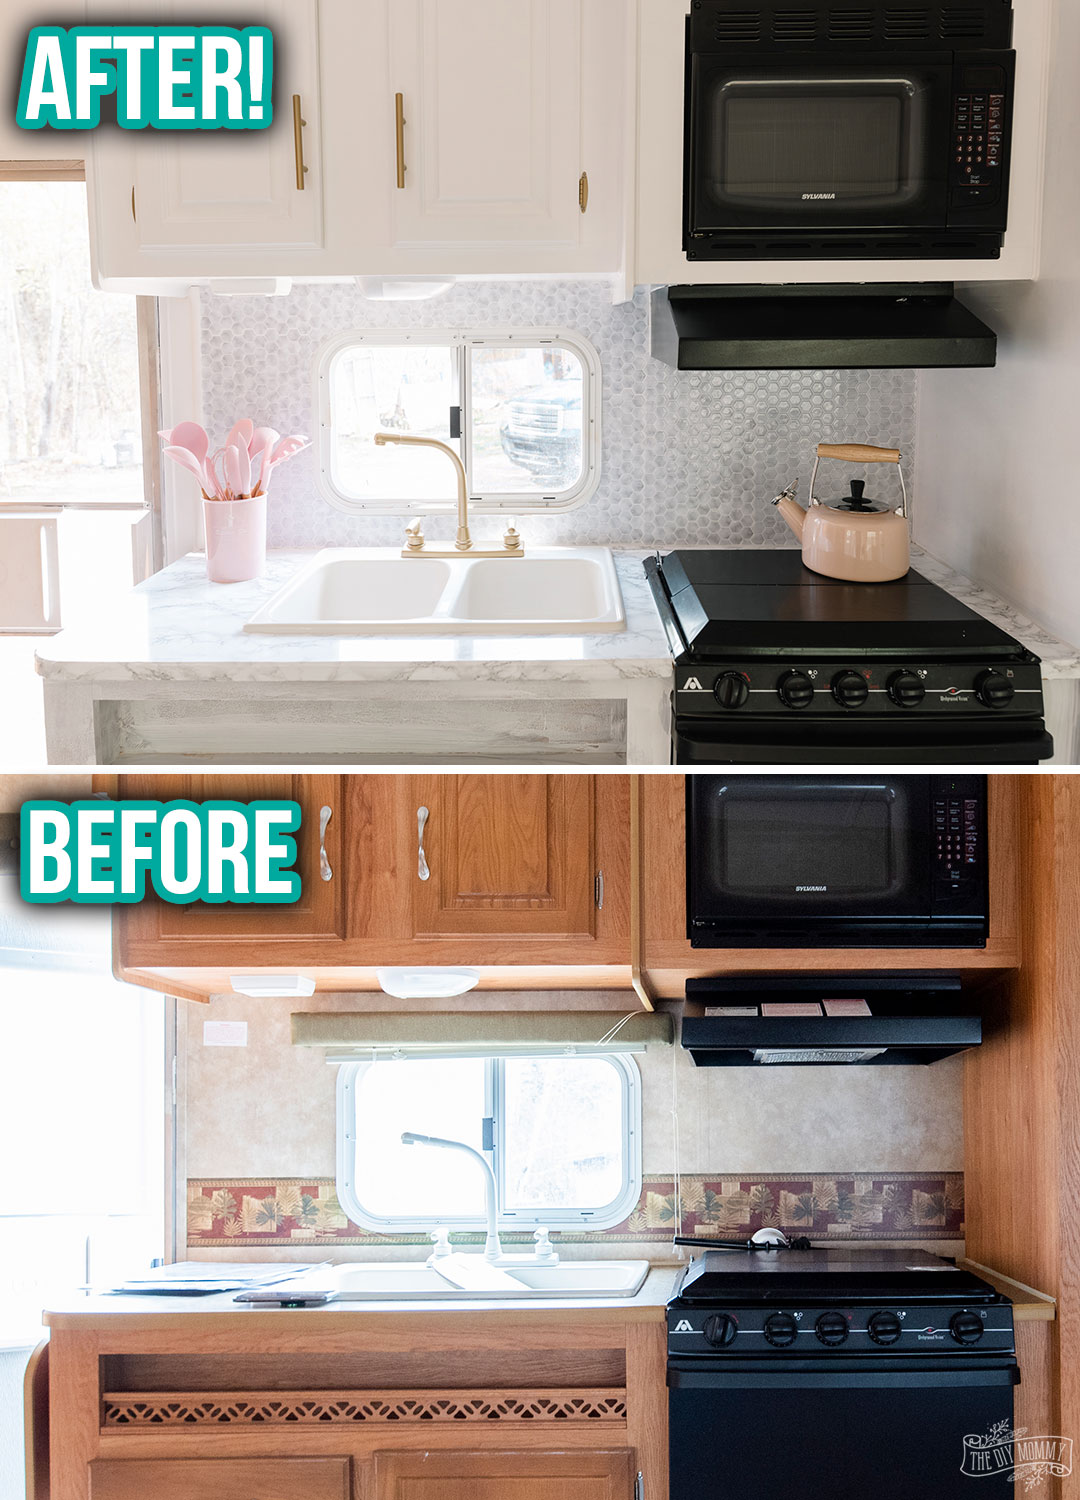 This camper kitchen counter area was completely made over with peel & stick tile back splash, contact paper counter, and spray paint!